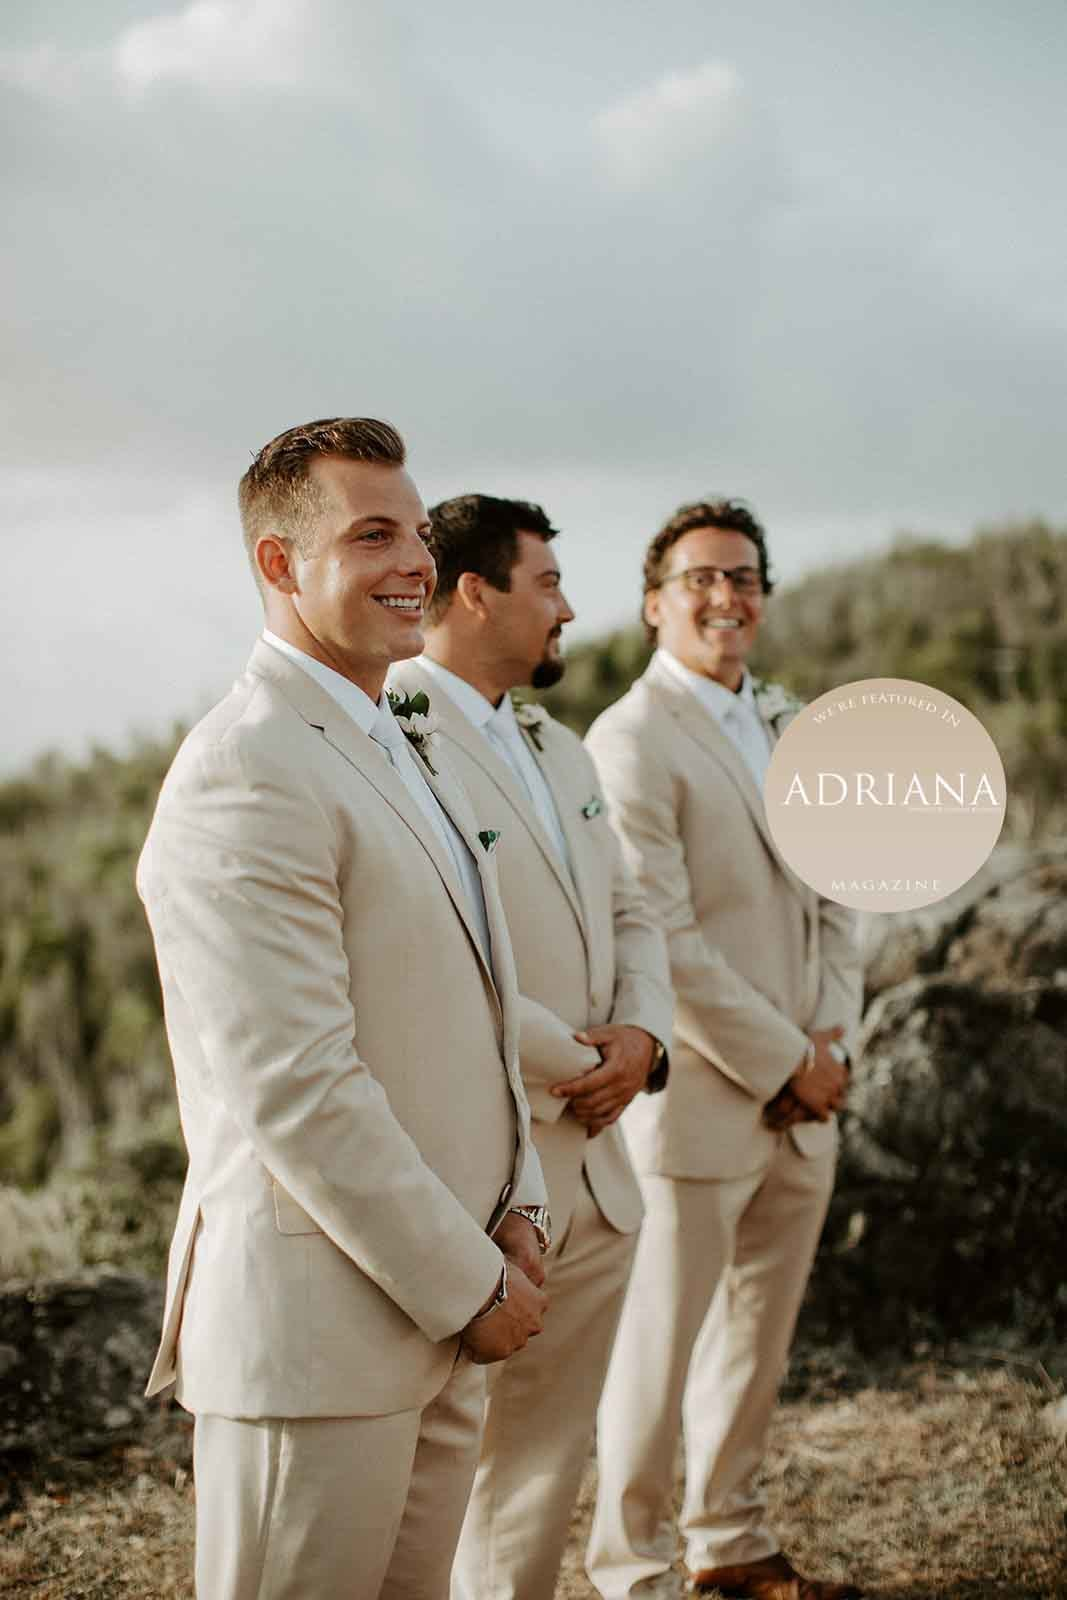 ADRIANA Magazine (Issue IV) - Kristi & Matt's Epic Wedding in St. John, USVI, Photography by Lindsay Vann Photography